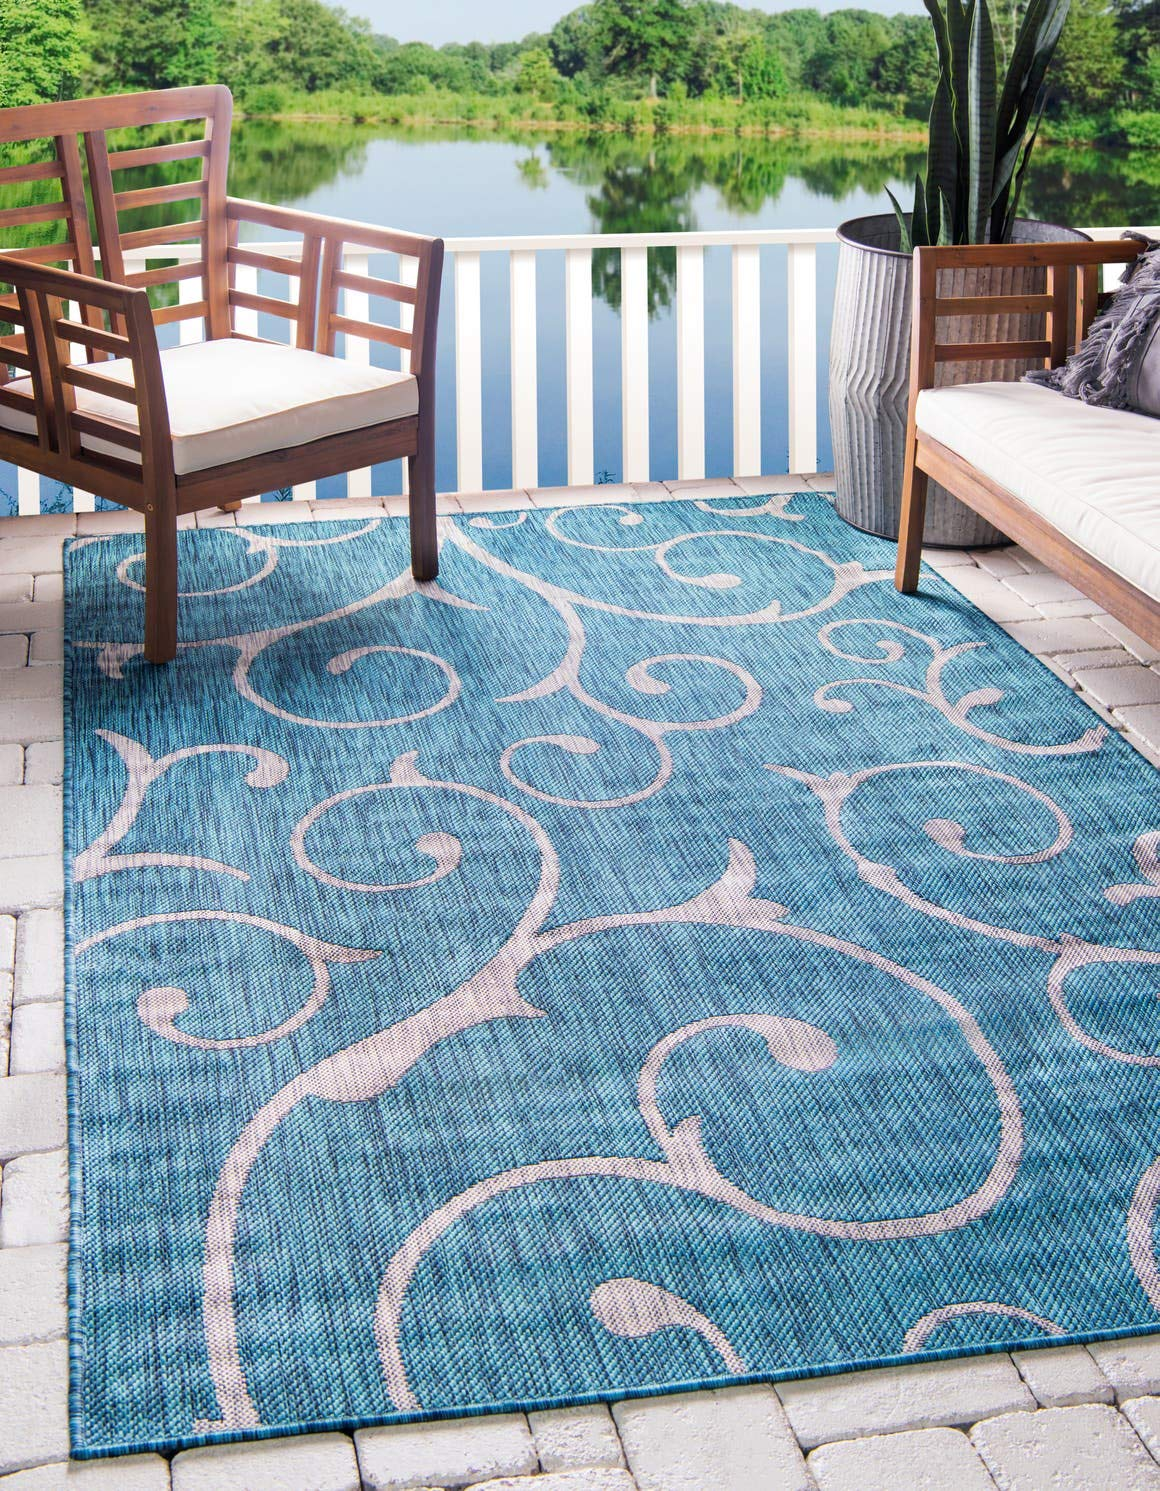 Unique Loom Outdoor Botanical Collection Vine Floral Transitional Indoor and Outdoor Flatweave Teal Area Rug 6 0 x 9 0